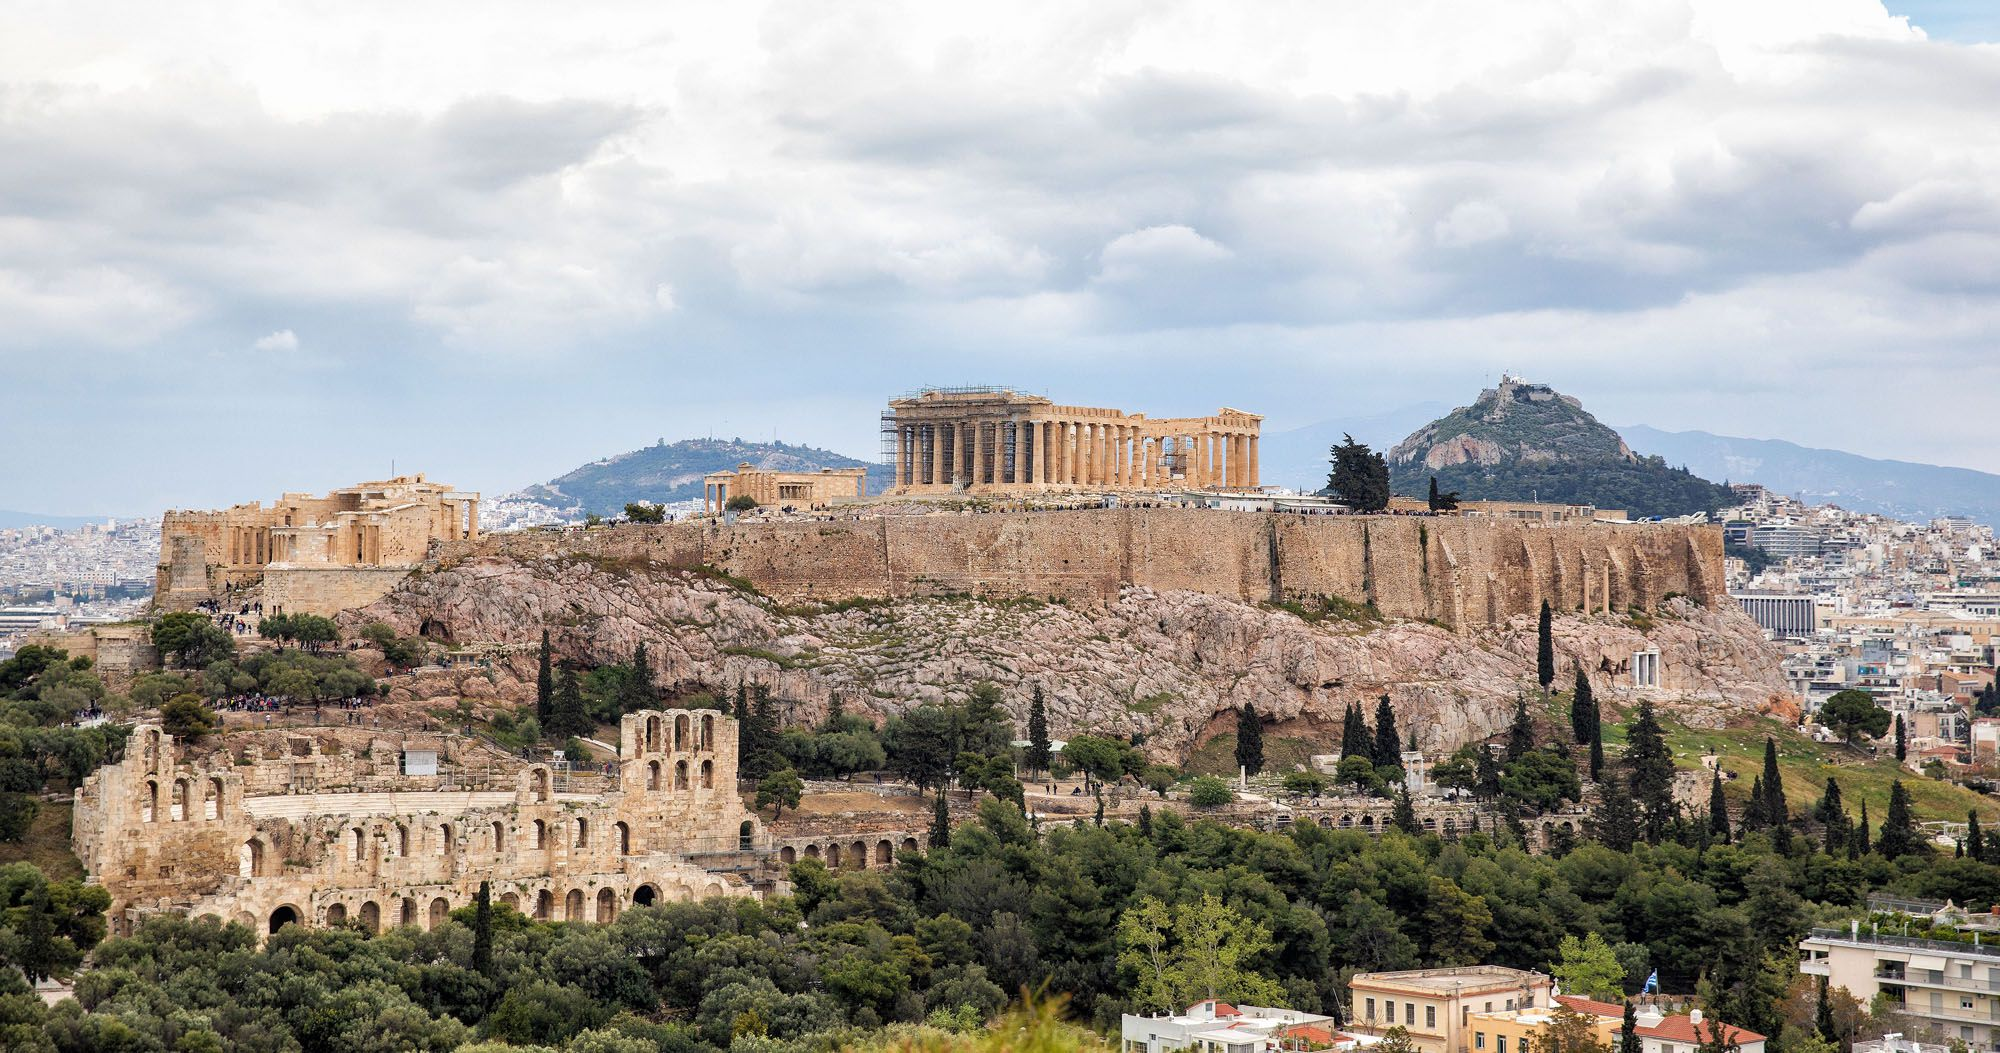 Best Views of the Acropolis